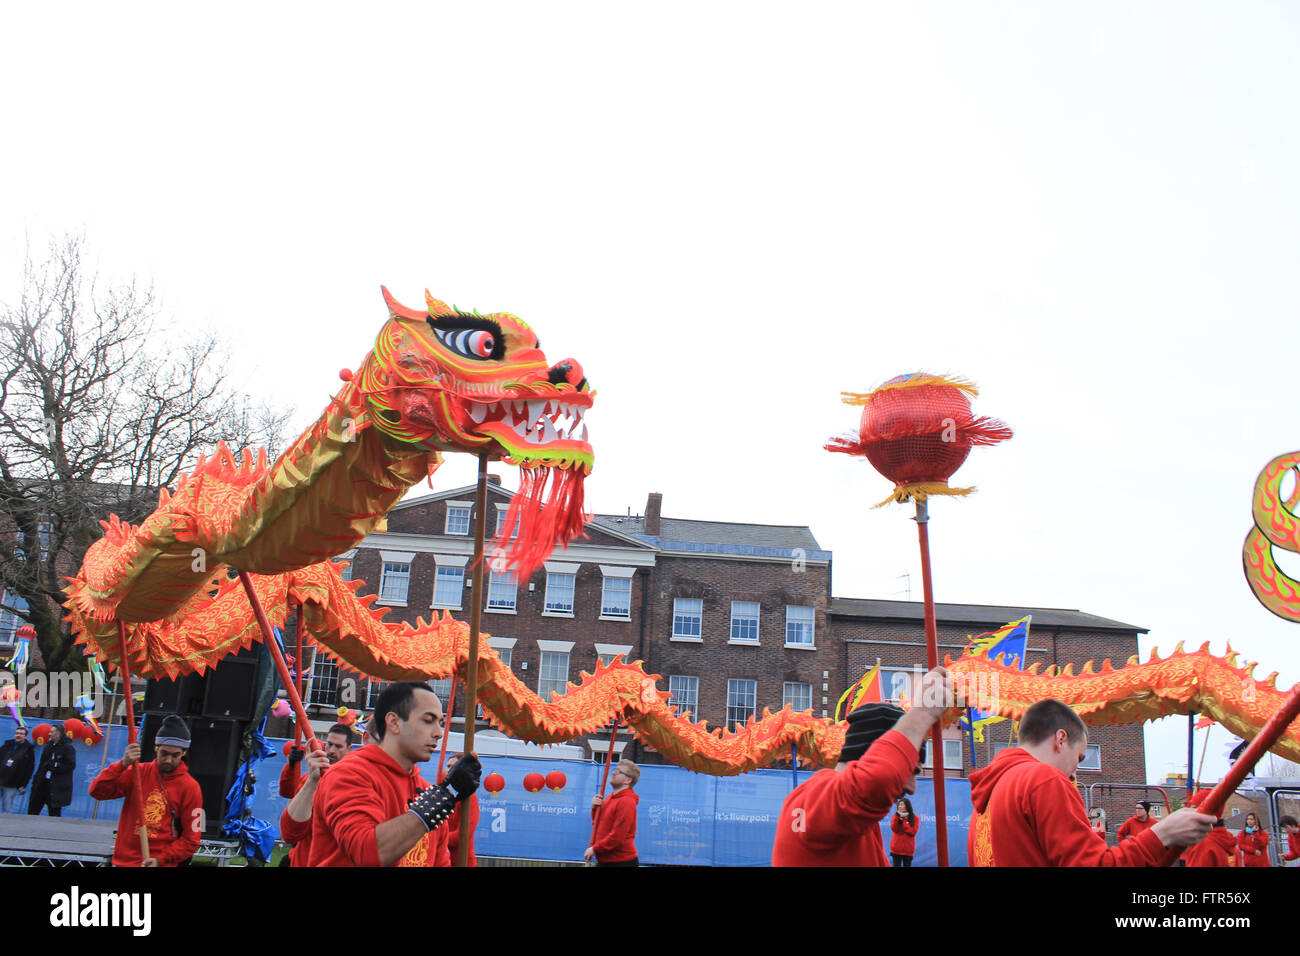 Chinese New Year In Liverpool Showing The Dragon During Parade